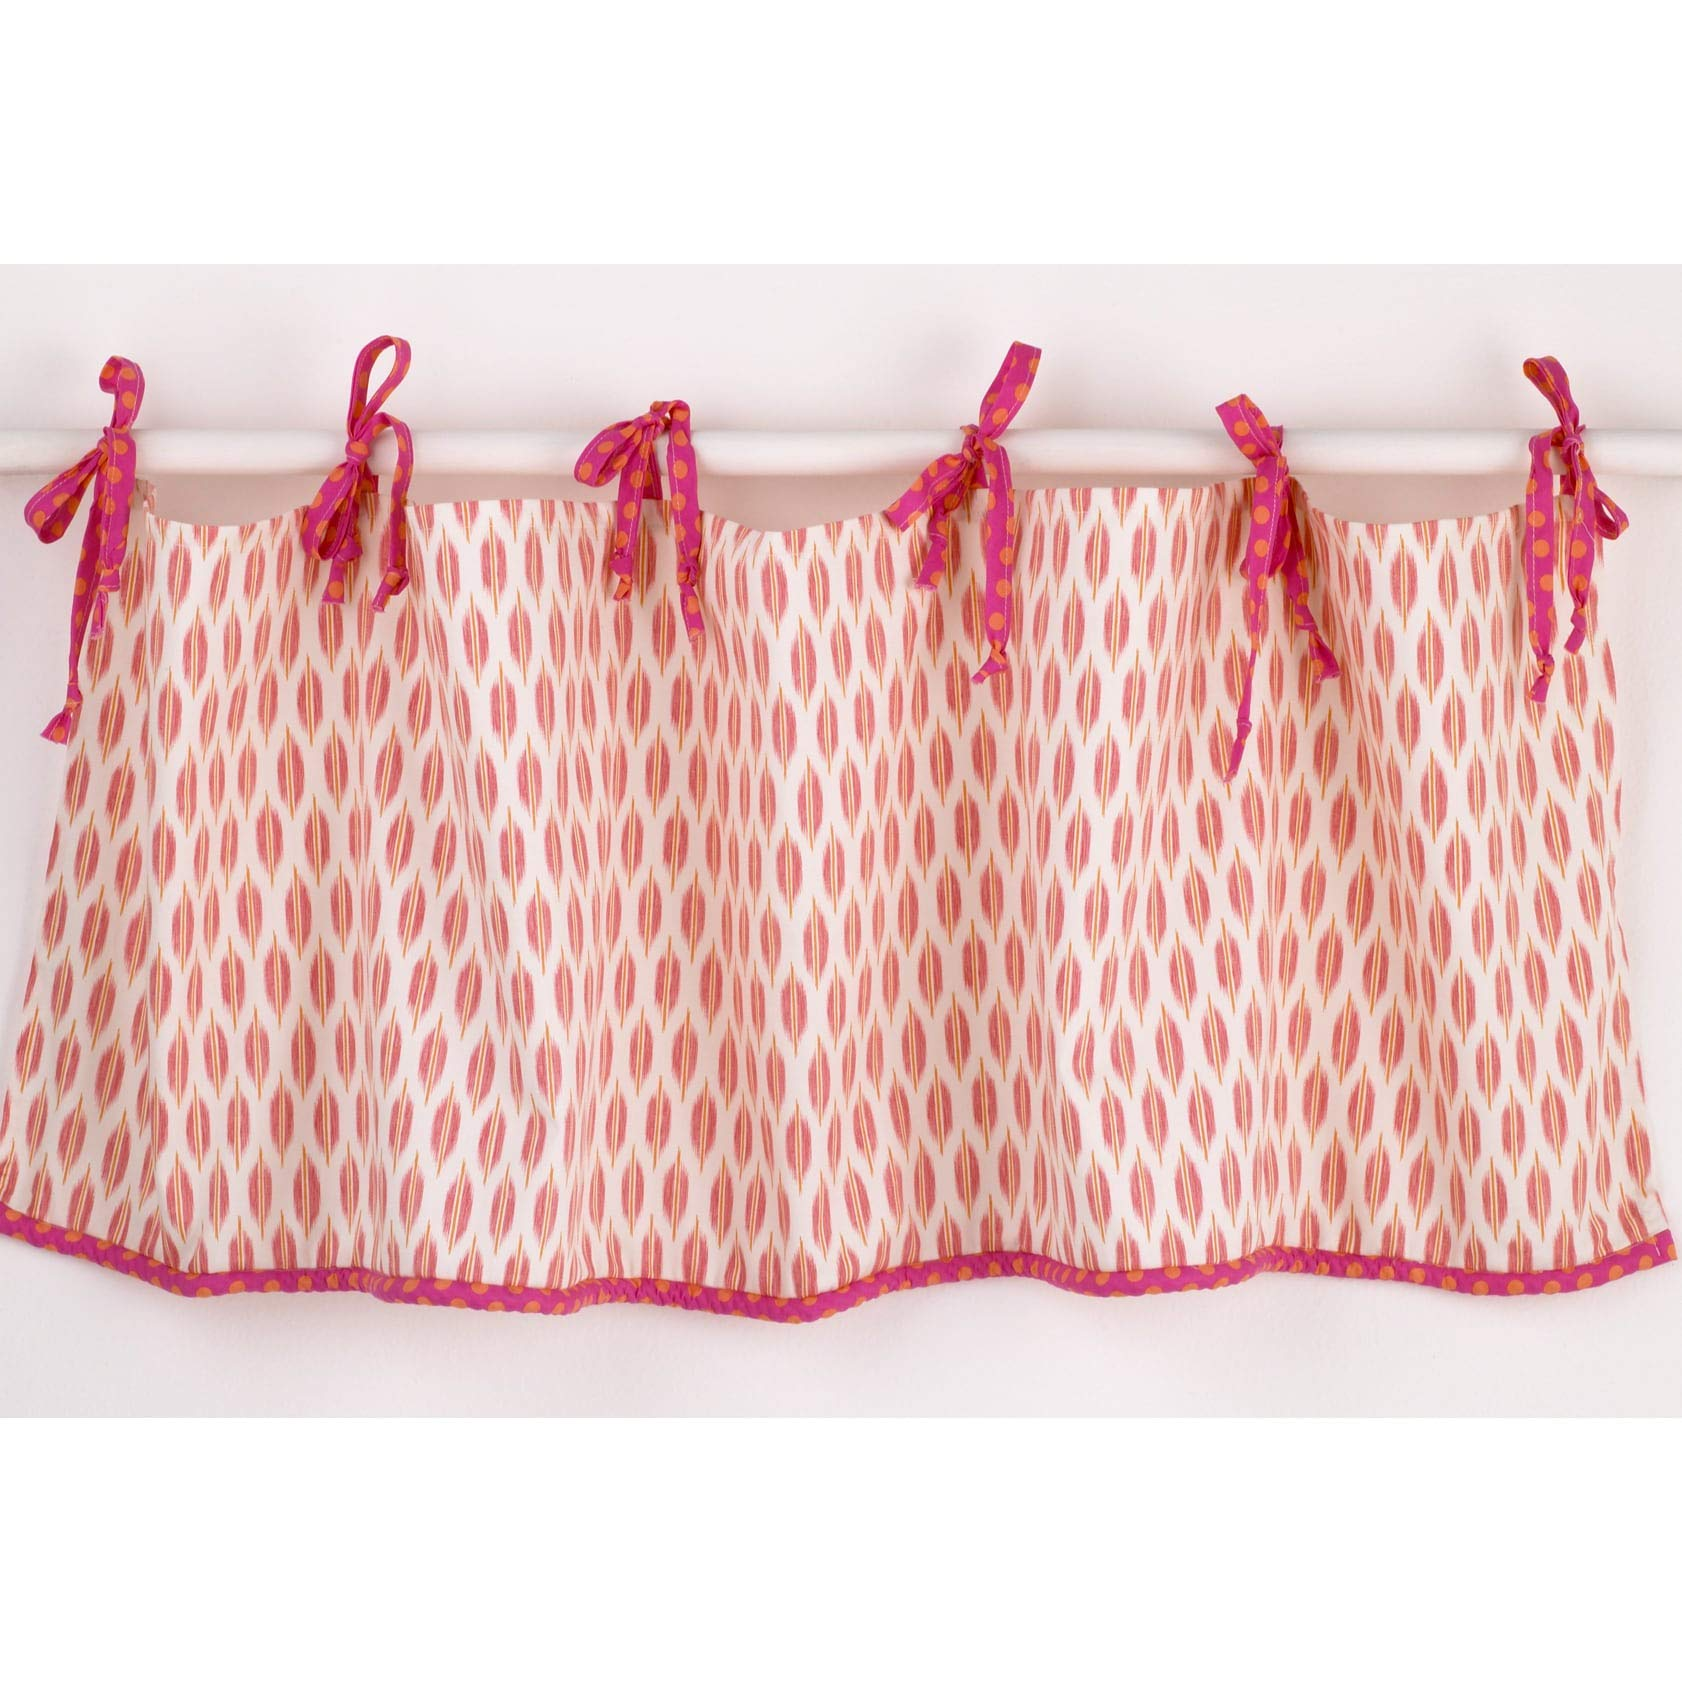 Sundance Curtain Valance Pink White Cotton by Unknown